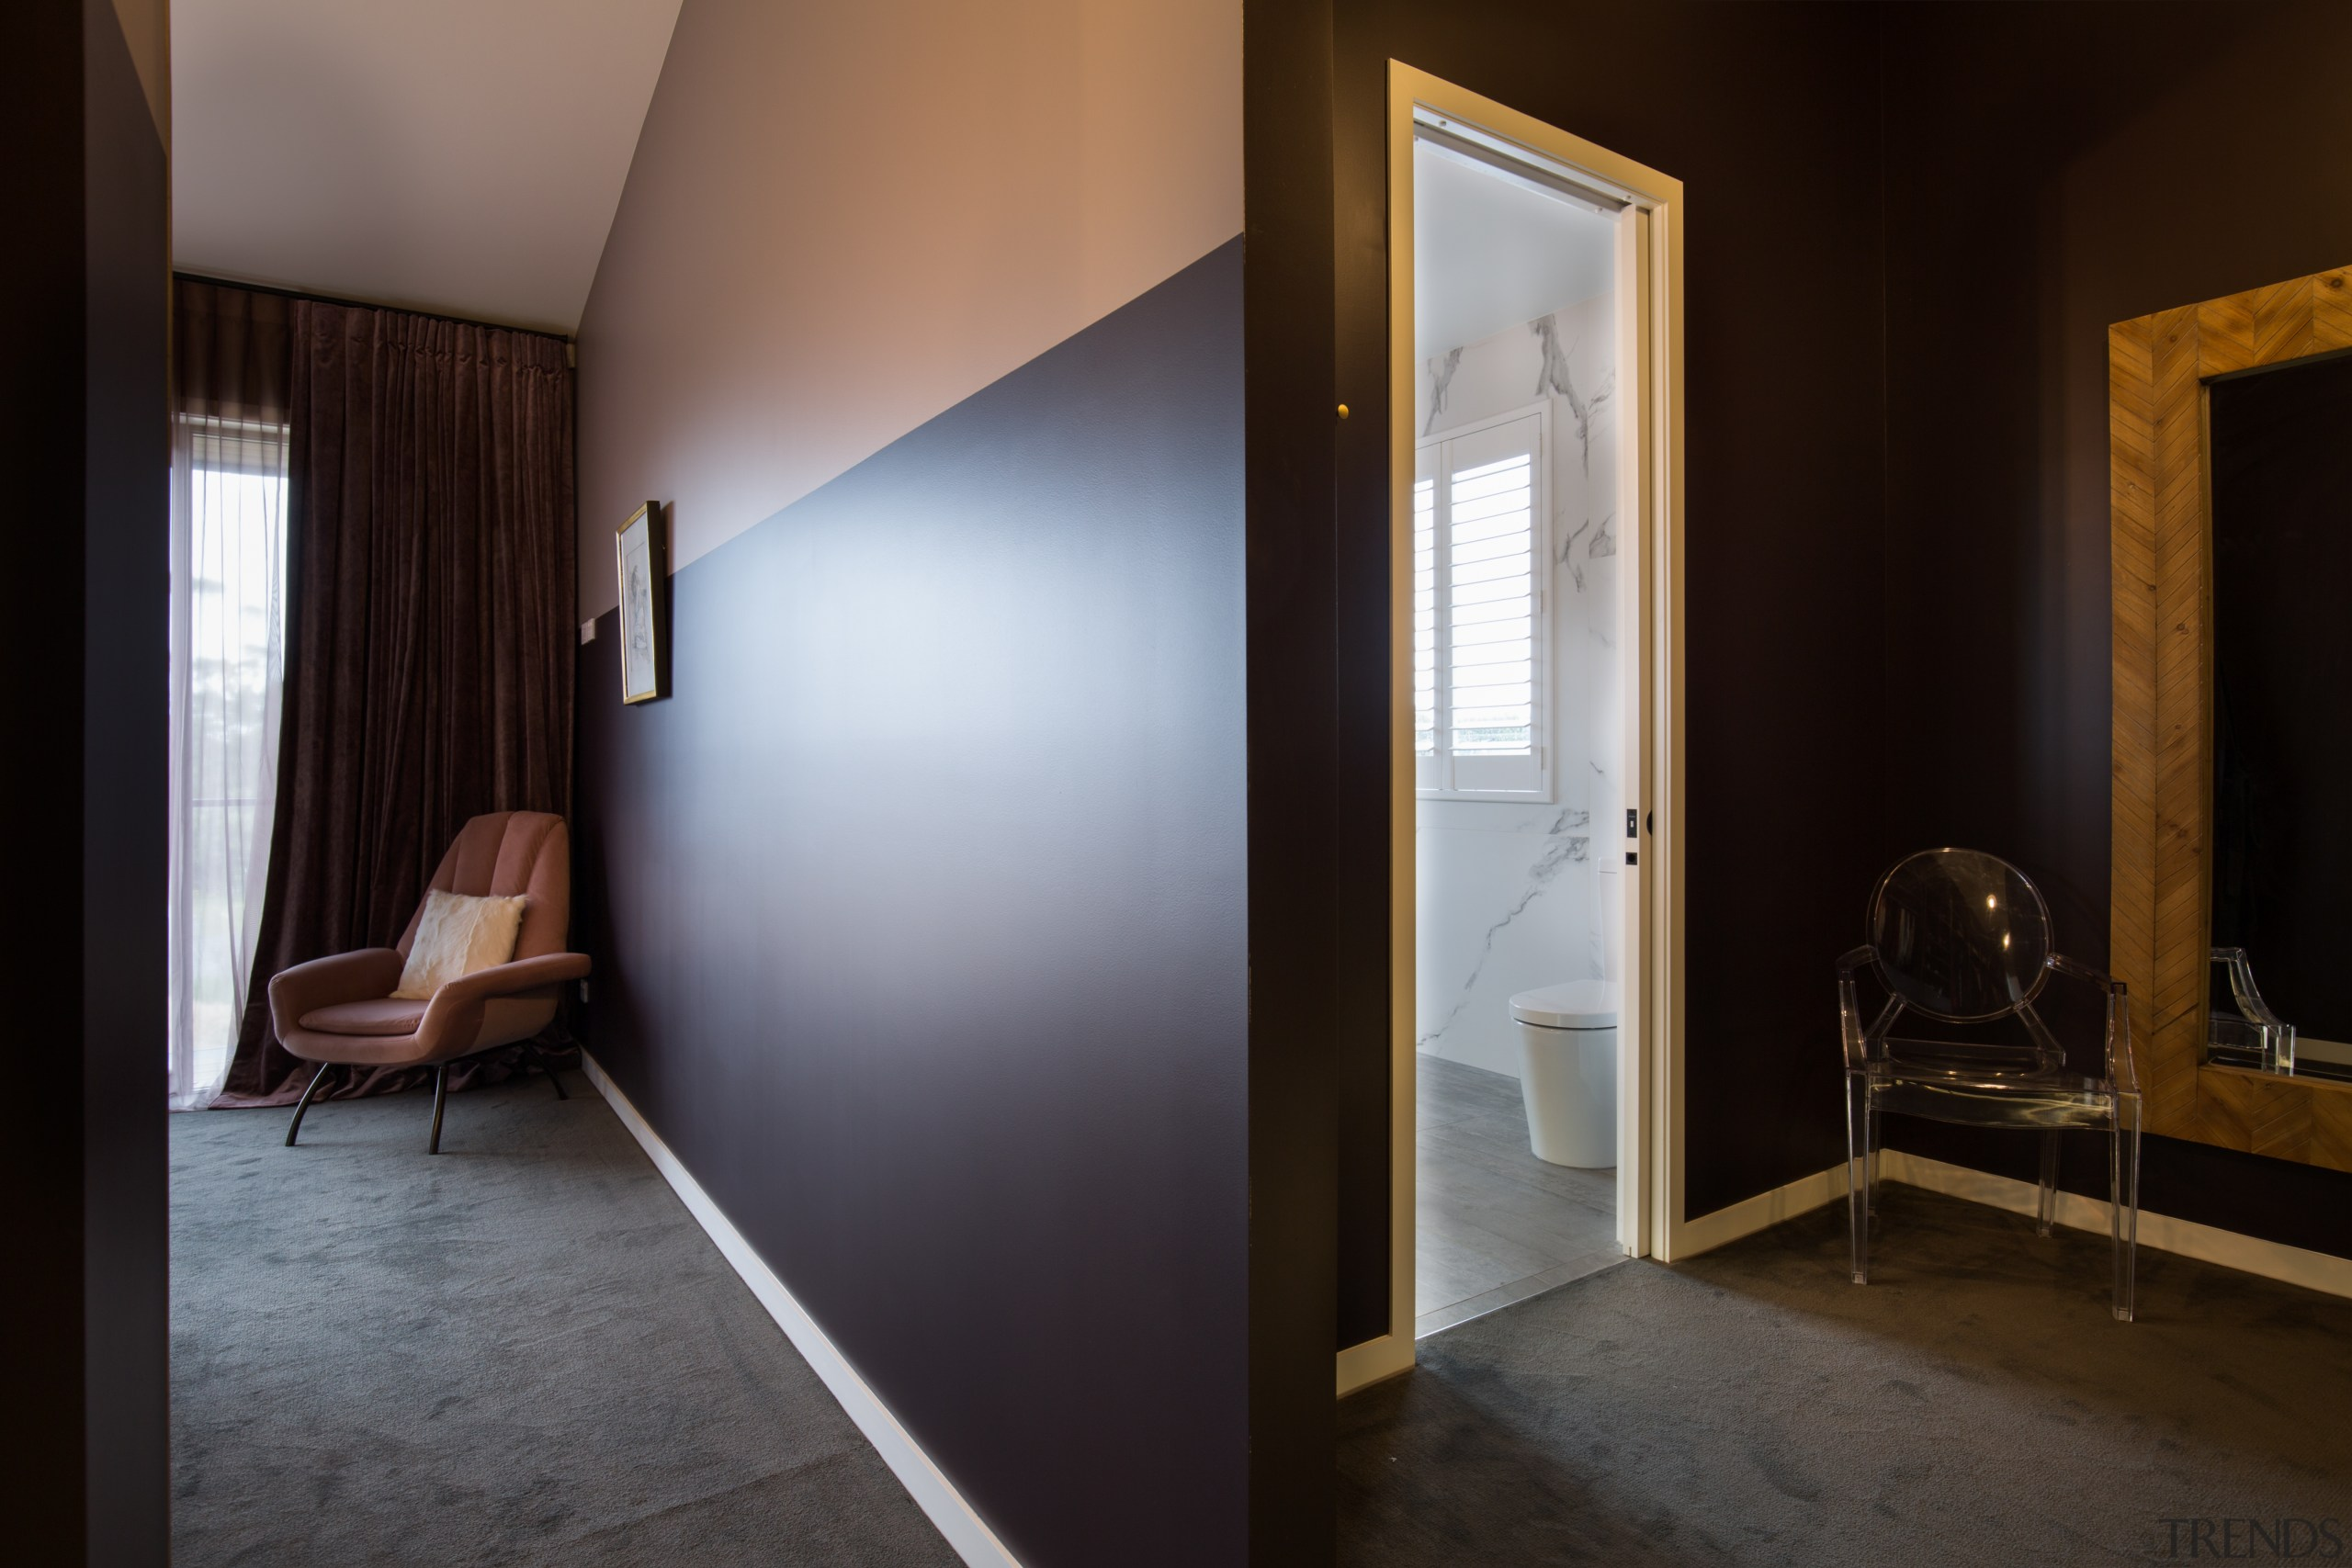 The space planning emphasises movement towards the bathroom architecture, ceiling, daylighting, door, floor, home, house, interior design, real estate, room, wall, window, wood, black, gray